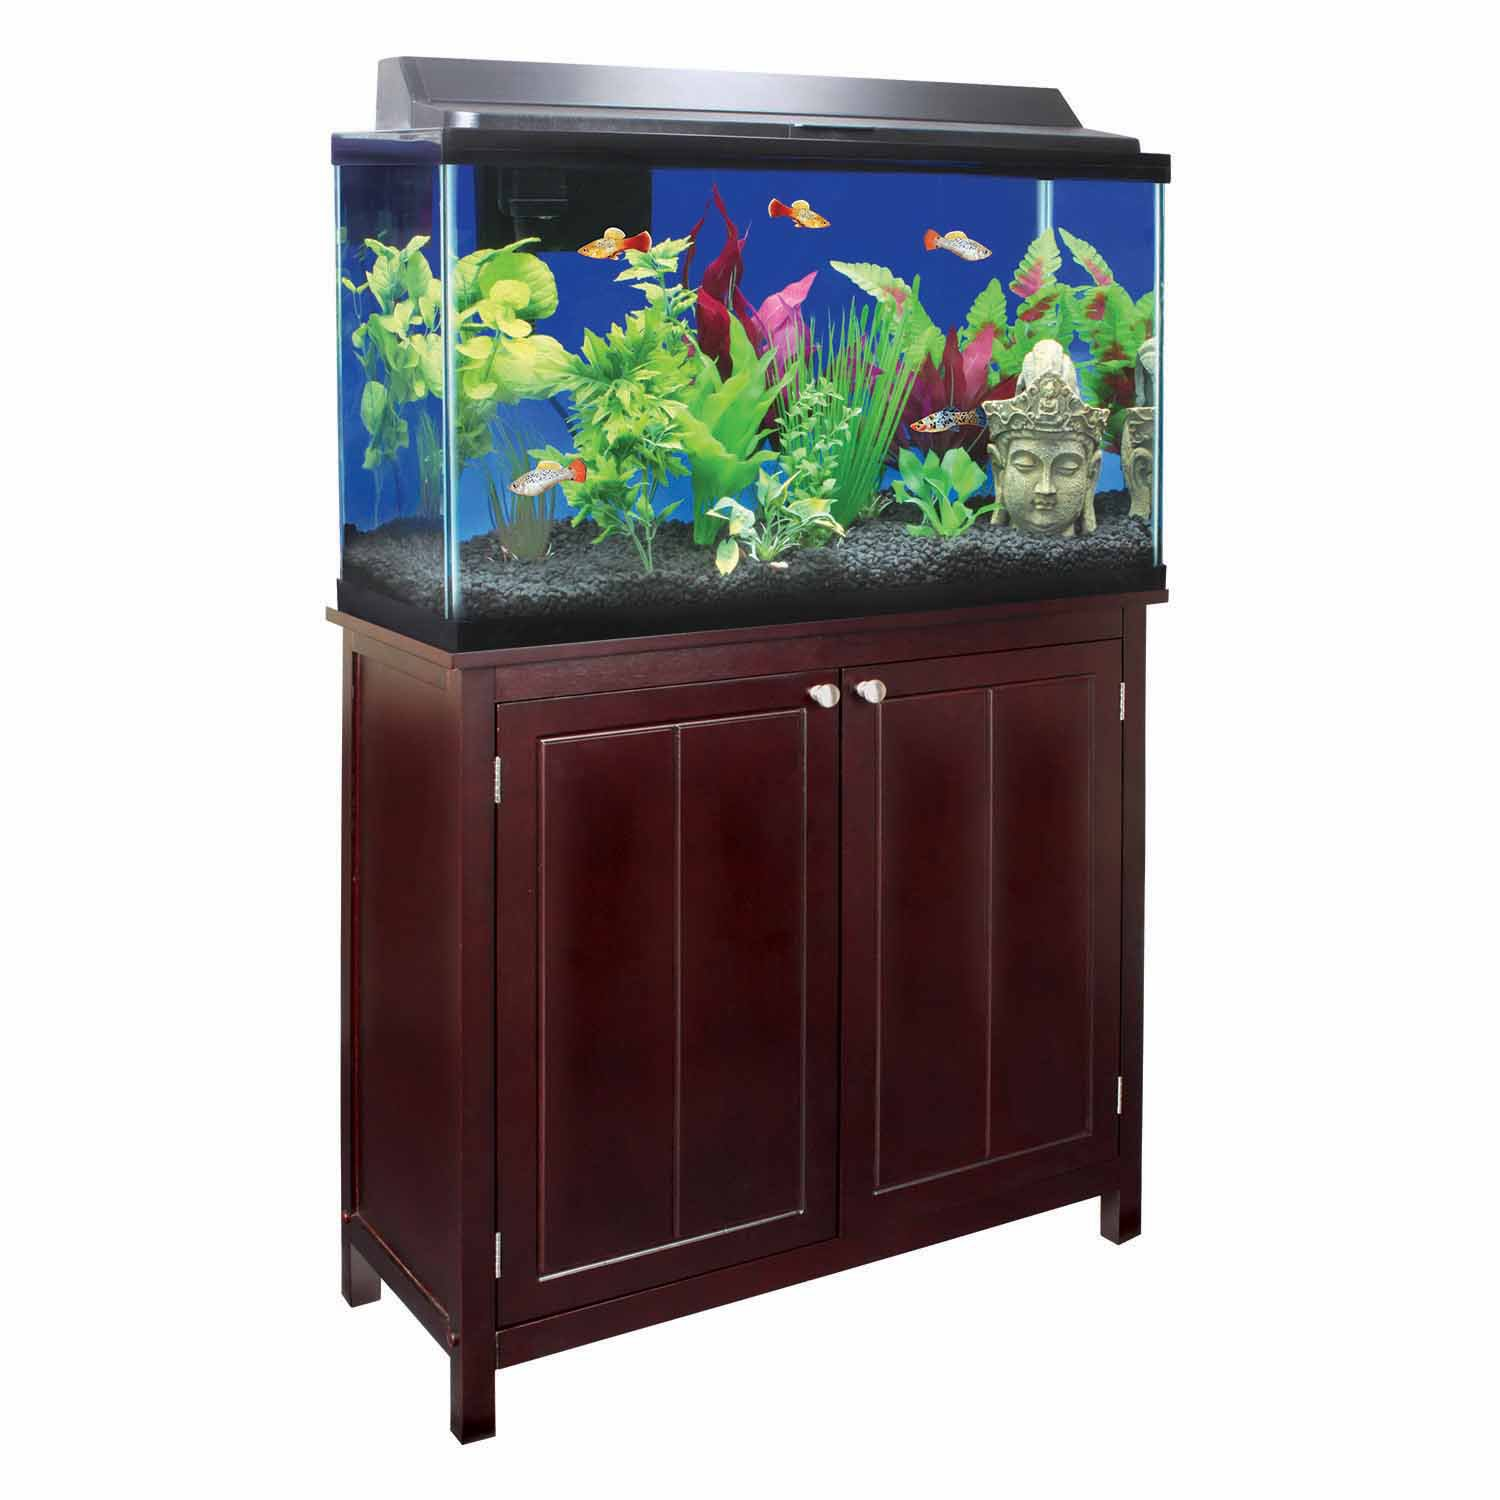 Imagitarium preferred winston tank stand 29 gallons petco for 55 gallon fish tank for sale